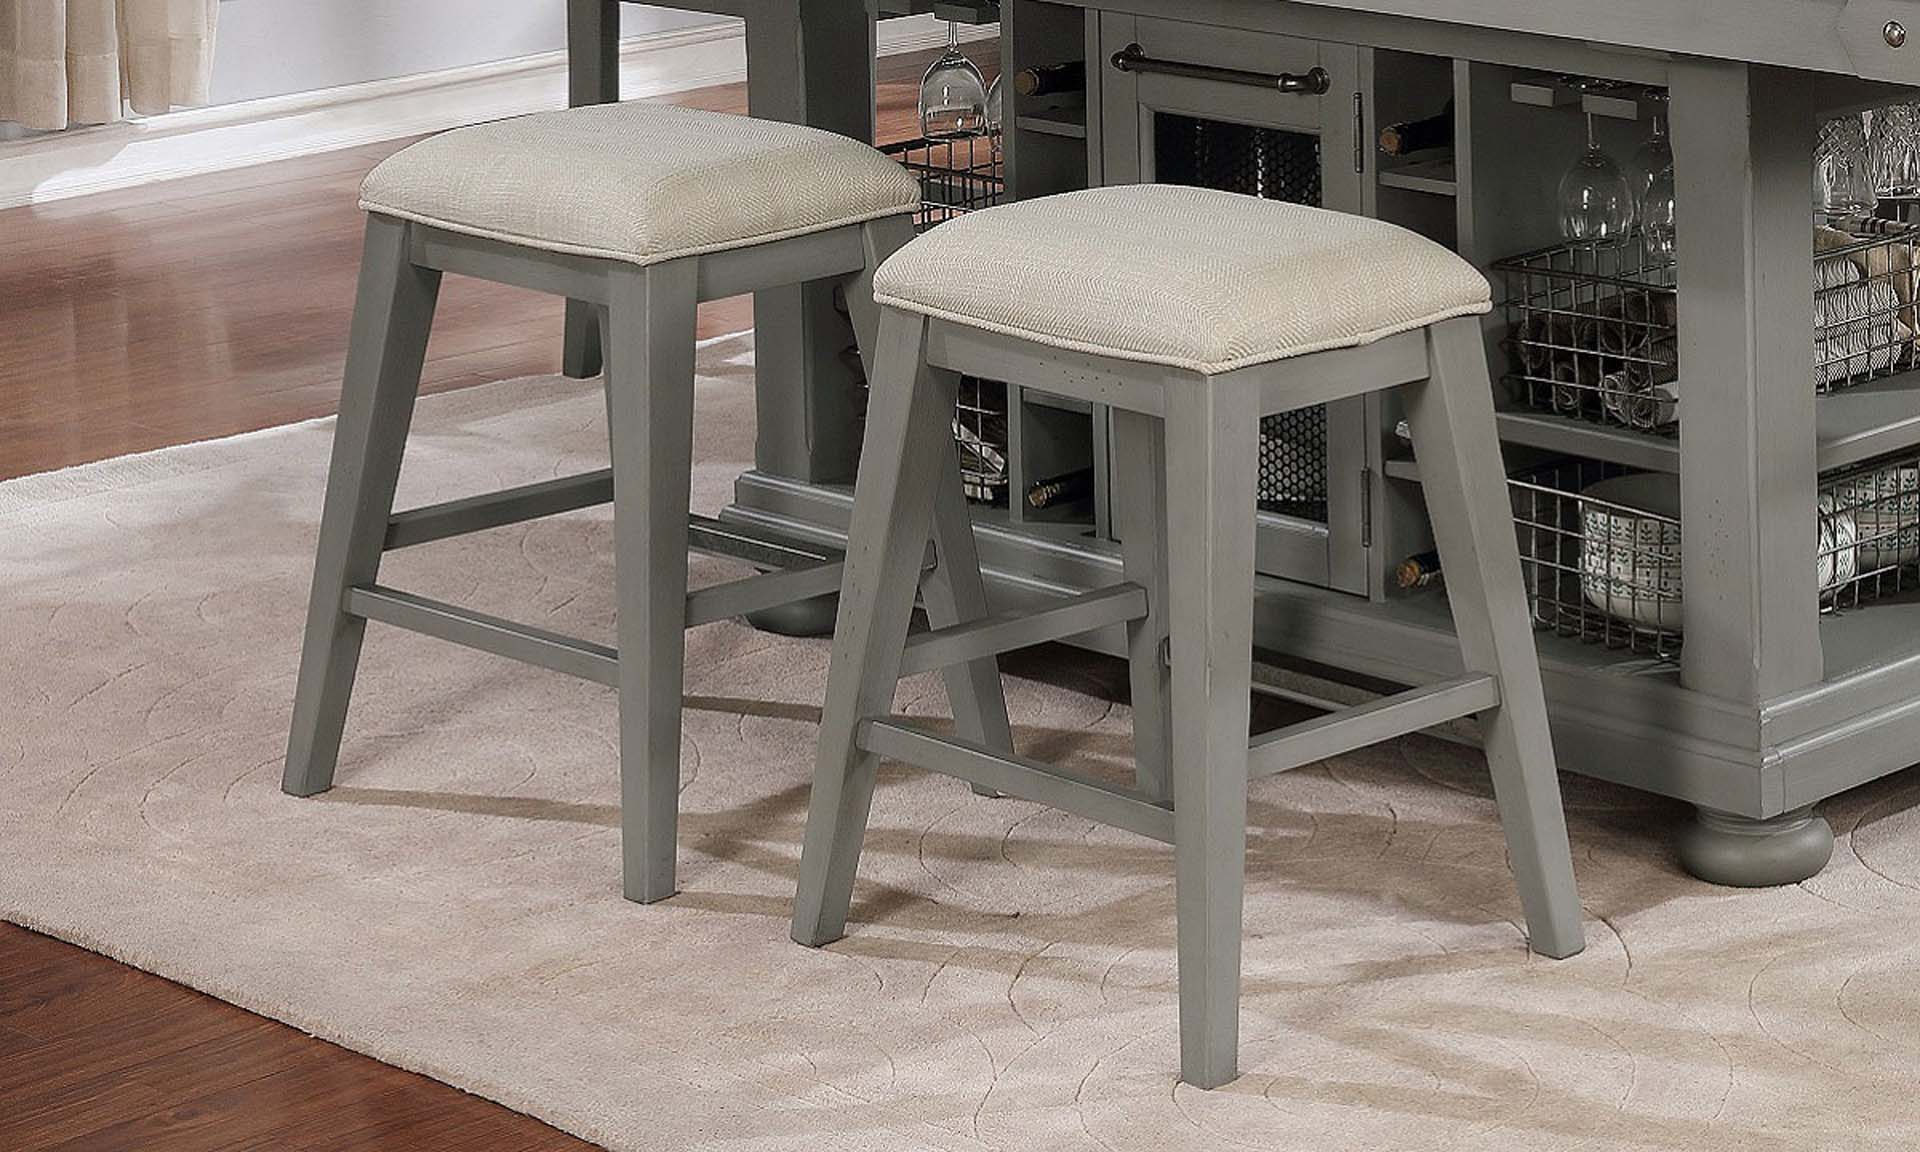 Miraculous Avalon Bellvielle Gray Vintage Counter Height Stool Set Caraccident5 Cool Chair Designs And Ideas Caraccident5Info